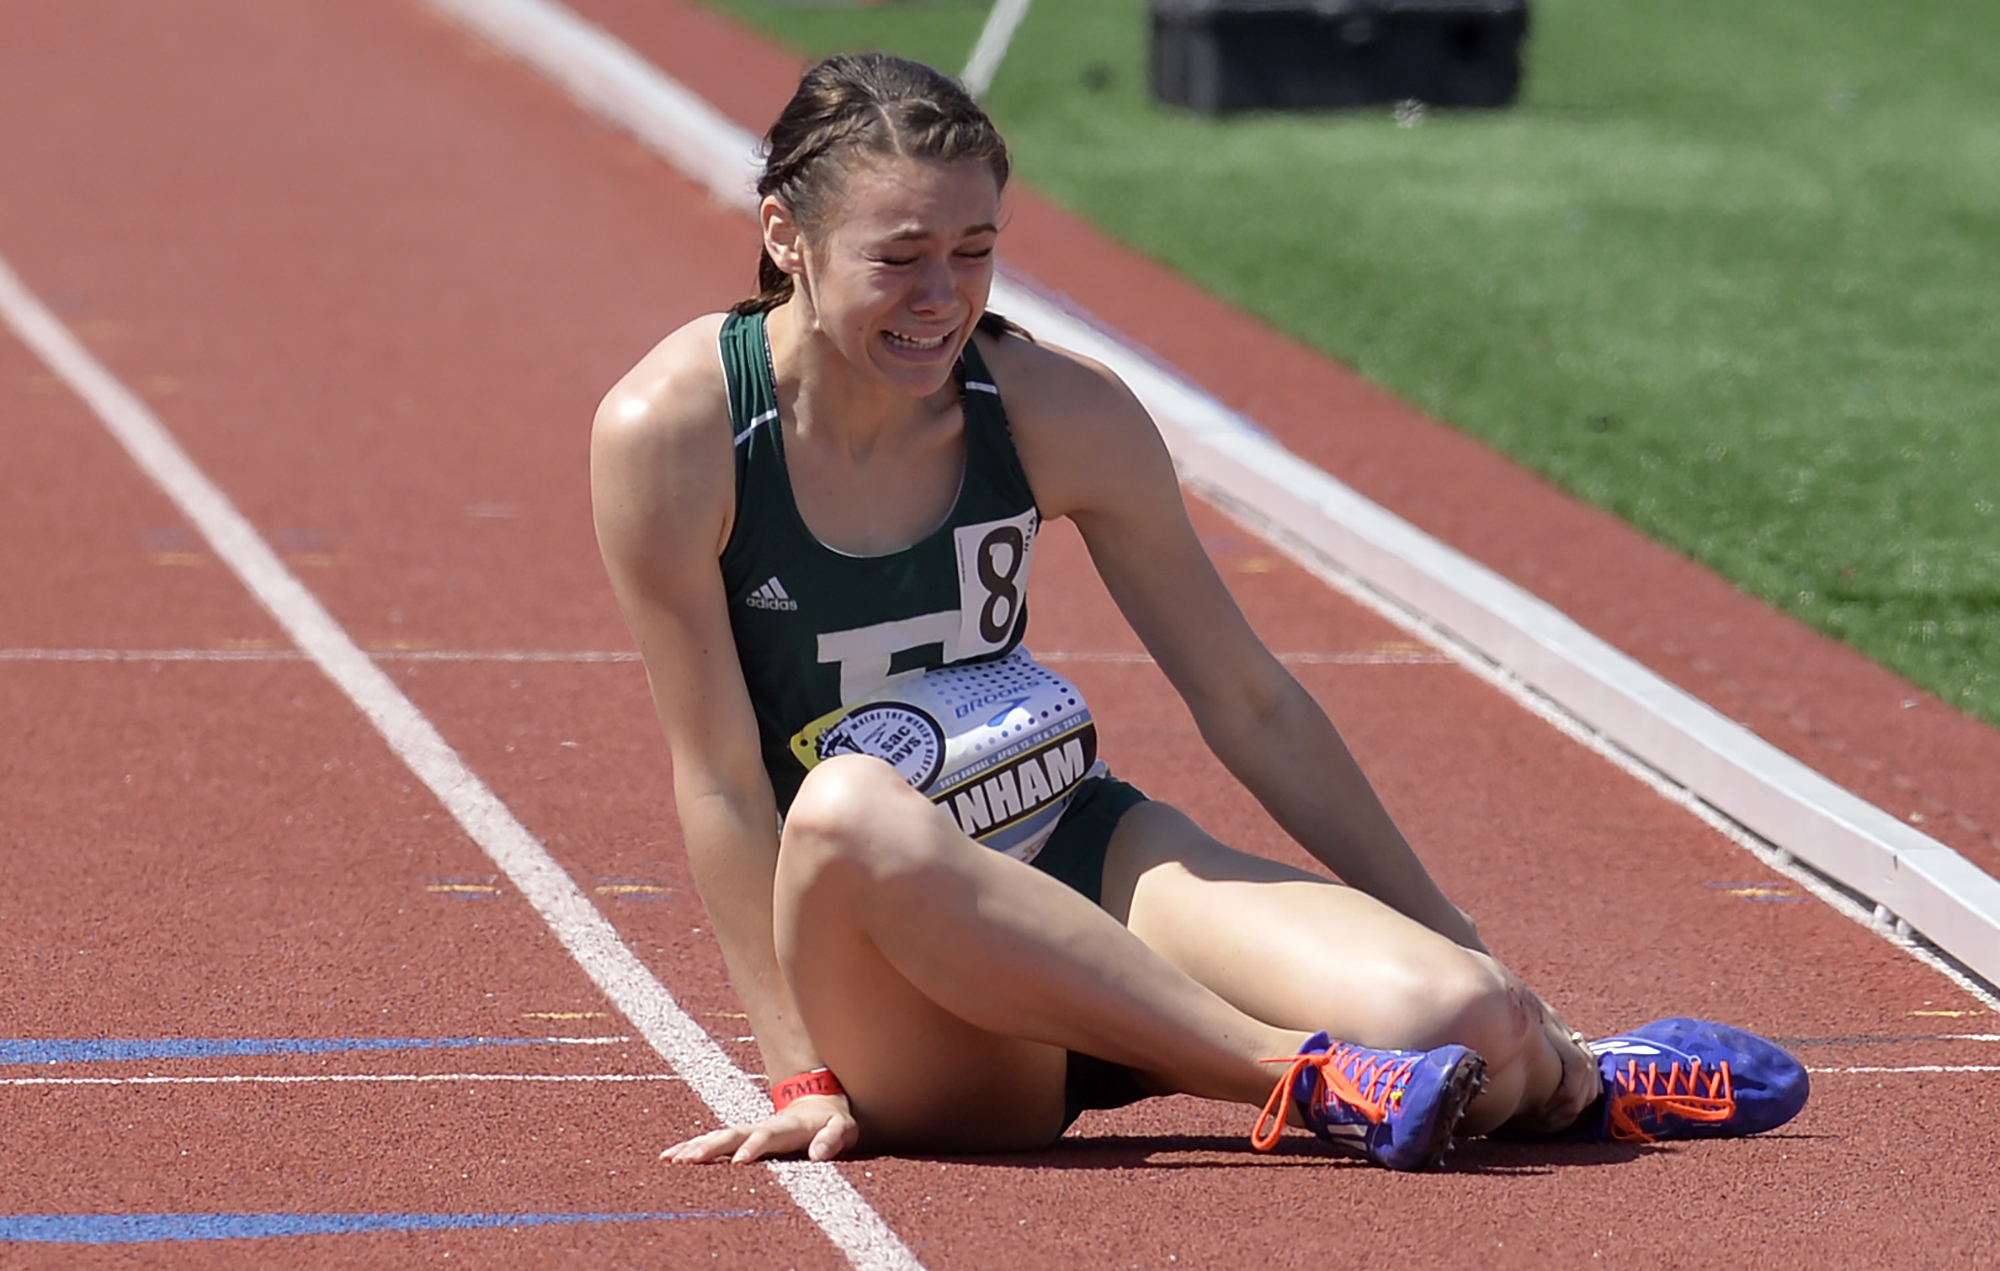 Rebekah Branham, of Eastern Michigan, lies on the track holding her injured ankle after stumbling in the 800m College Open Section 3  event at the Mt. SAC Relays at are El Camino College in Torrance Friday, April 14, 2017.